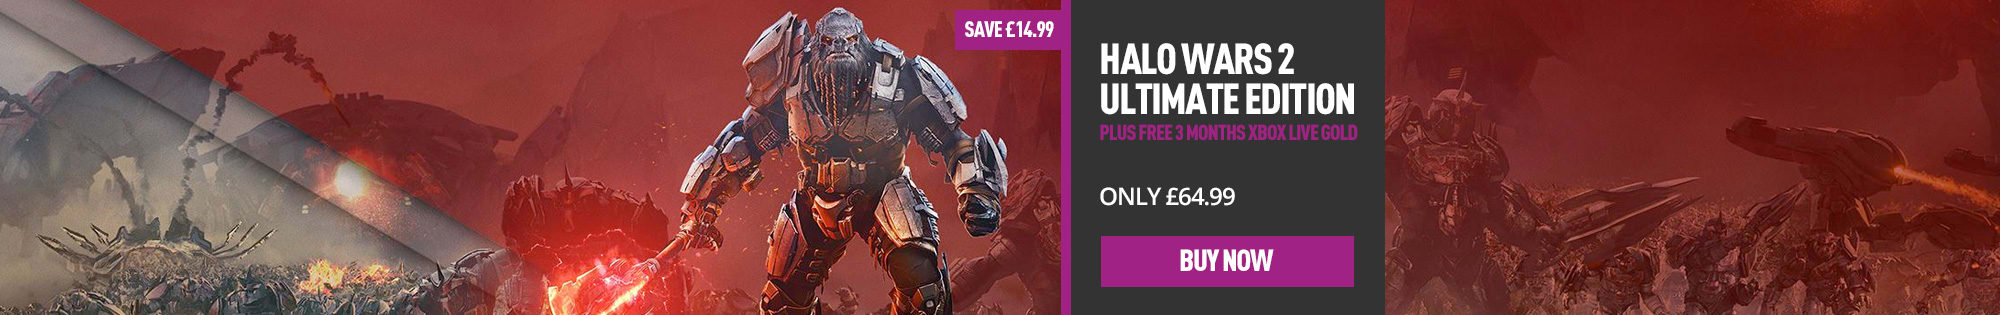 Halo Wars 2 Ultimate Edition for Xbox One - Play Early